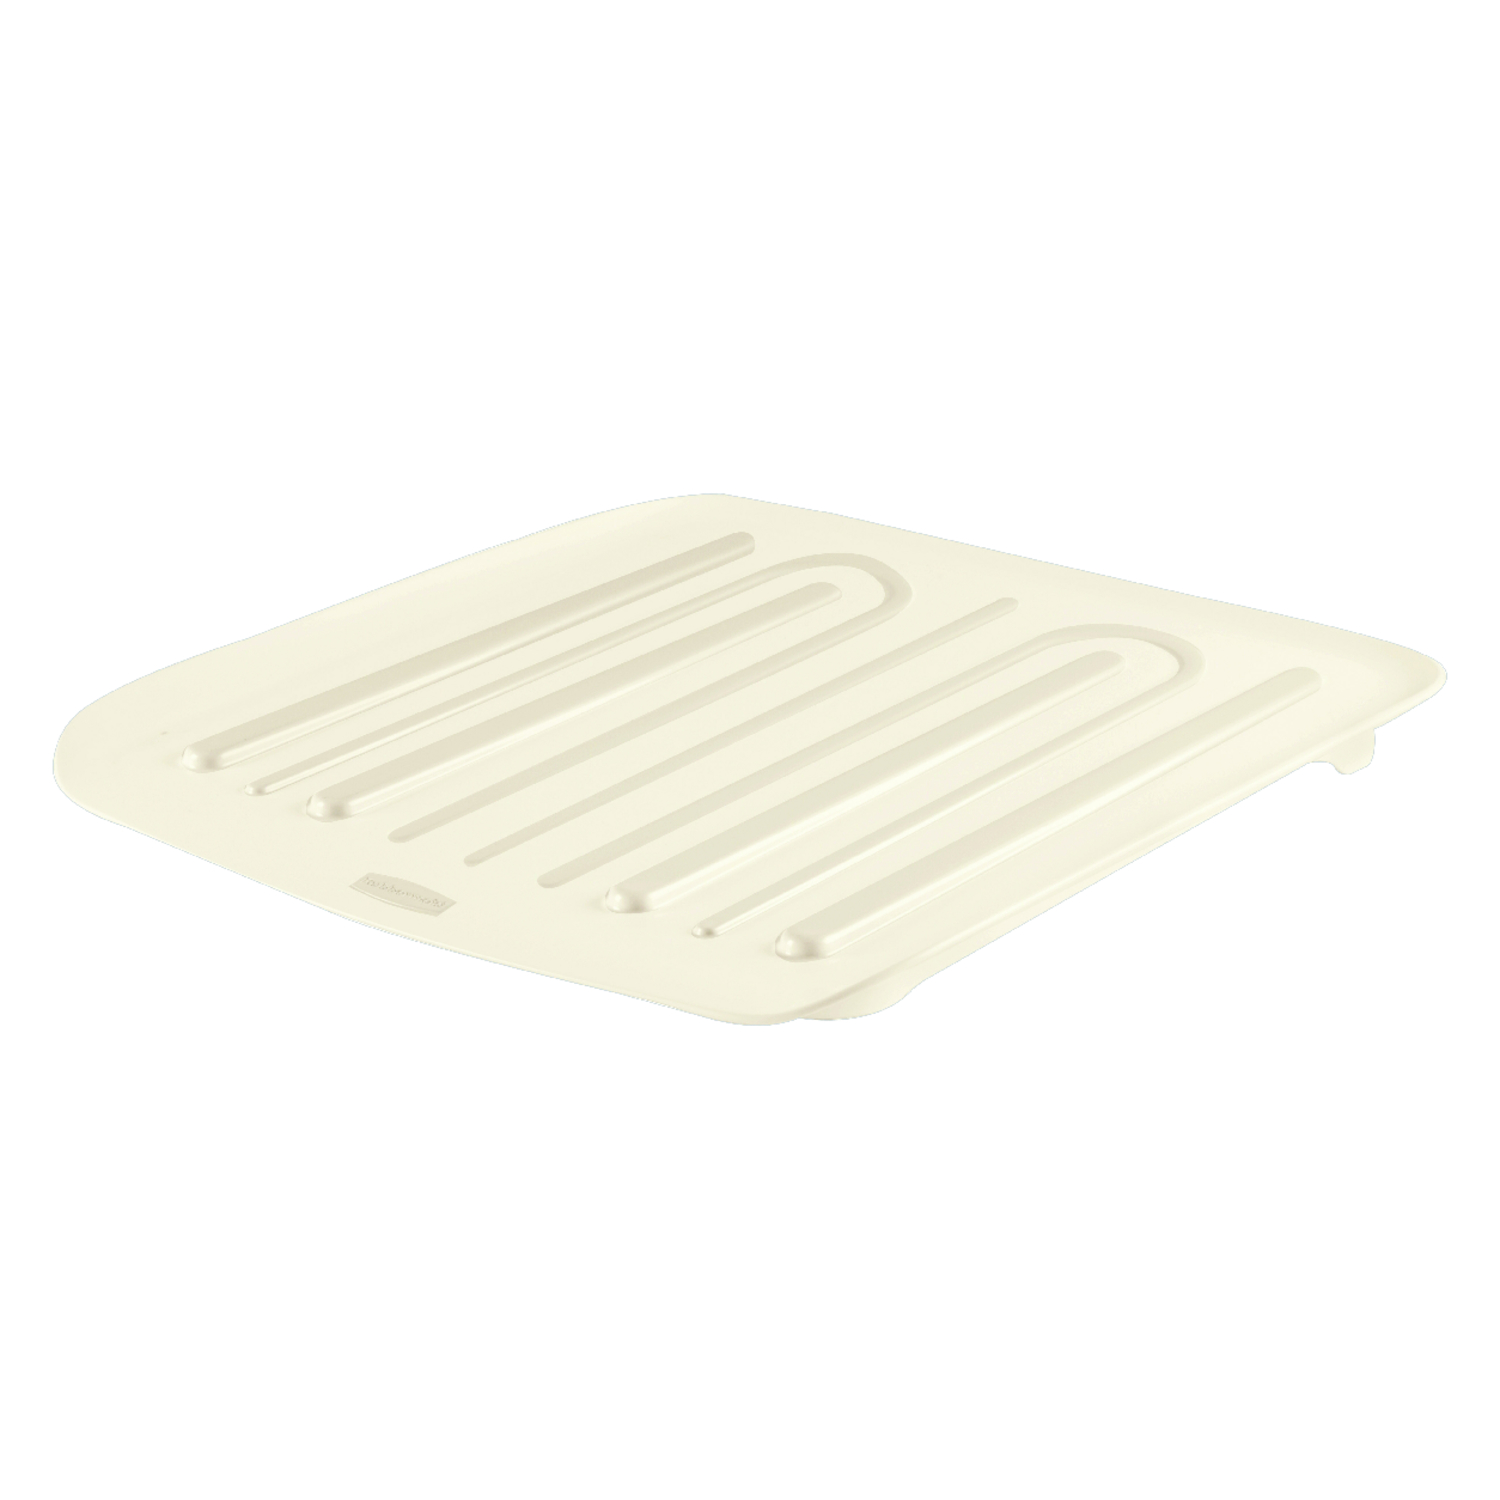 Rubbermaid  14.3 in. L x 15.3 in. W x 1.3 in. H Plastic  Dish Drainer  Bisque